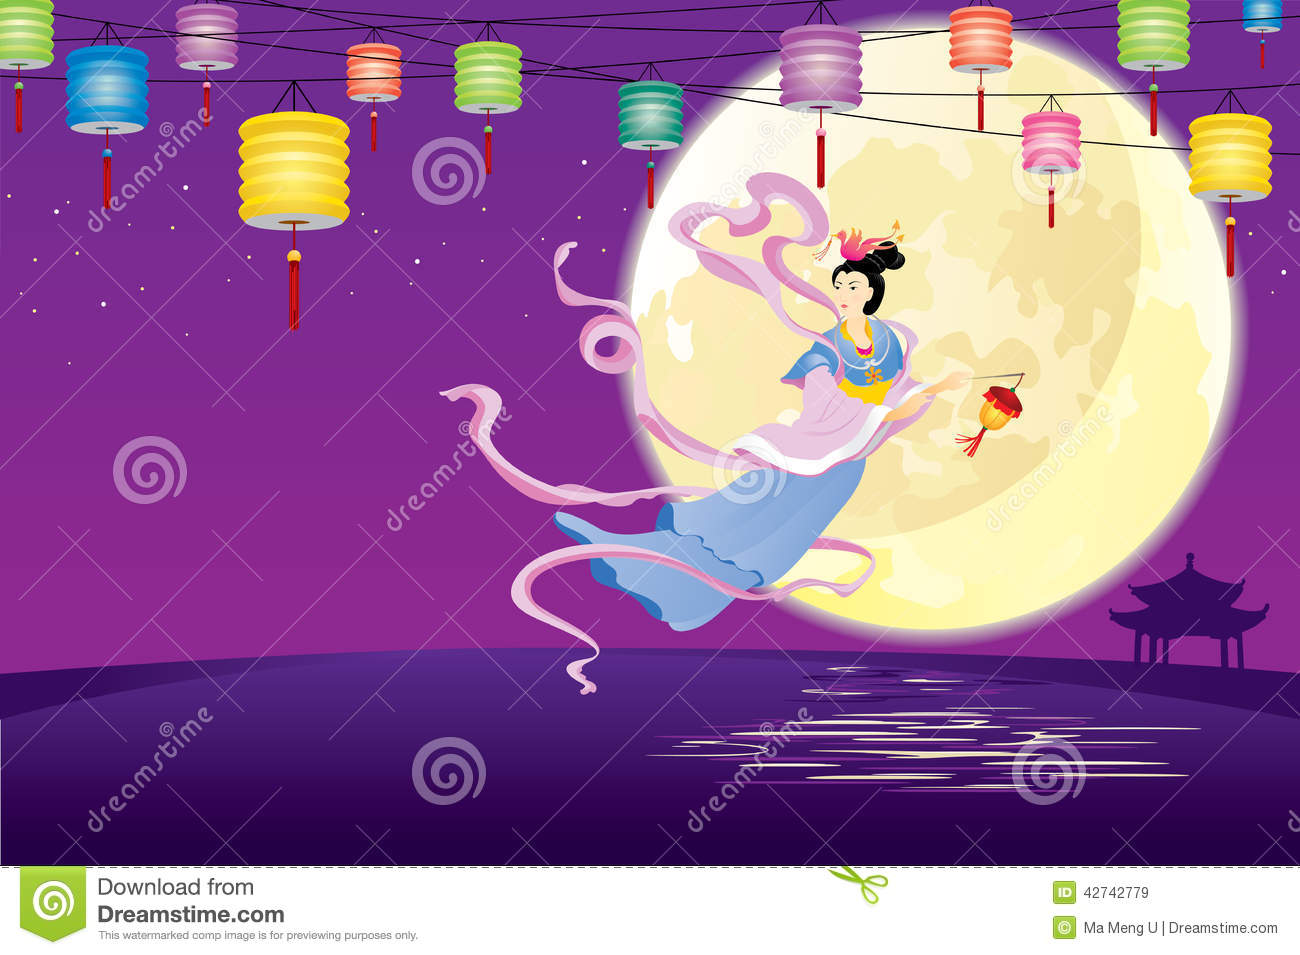 Chinese Fairy flying to the moon illustration